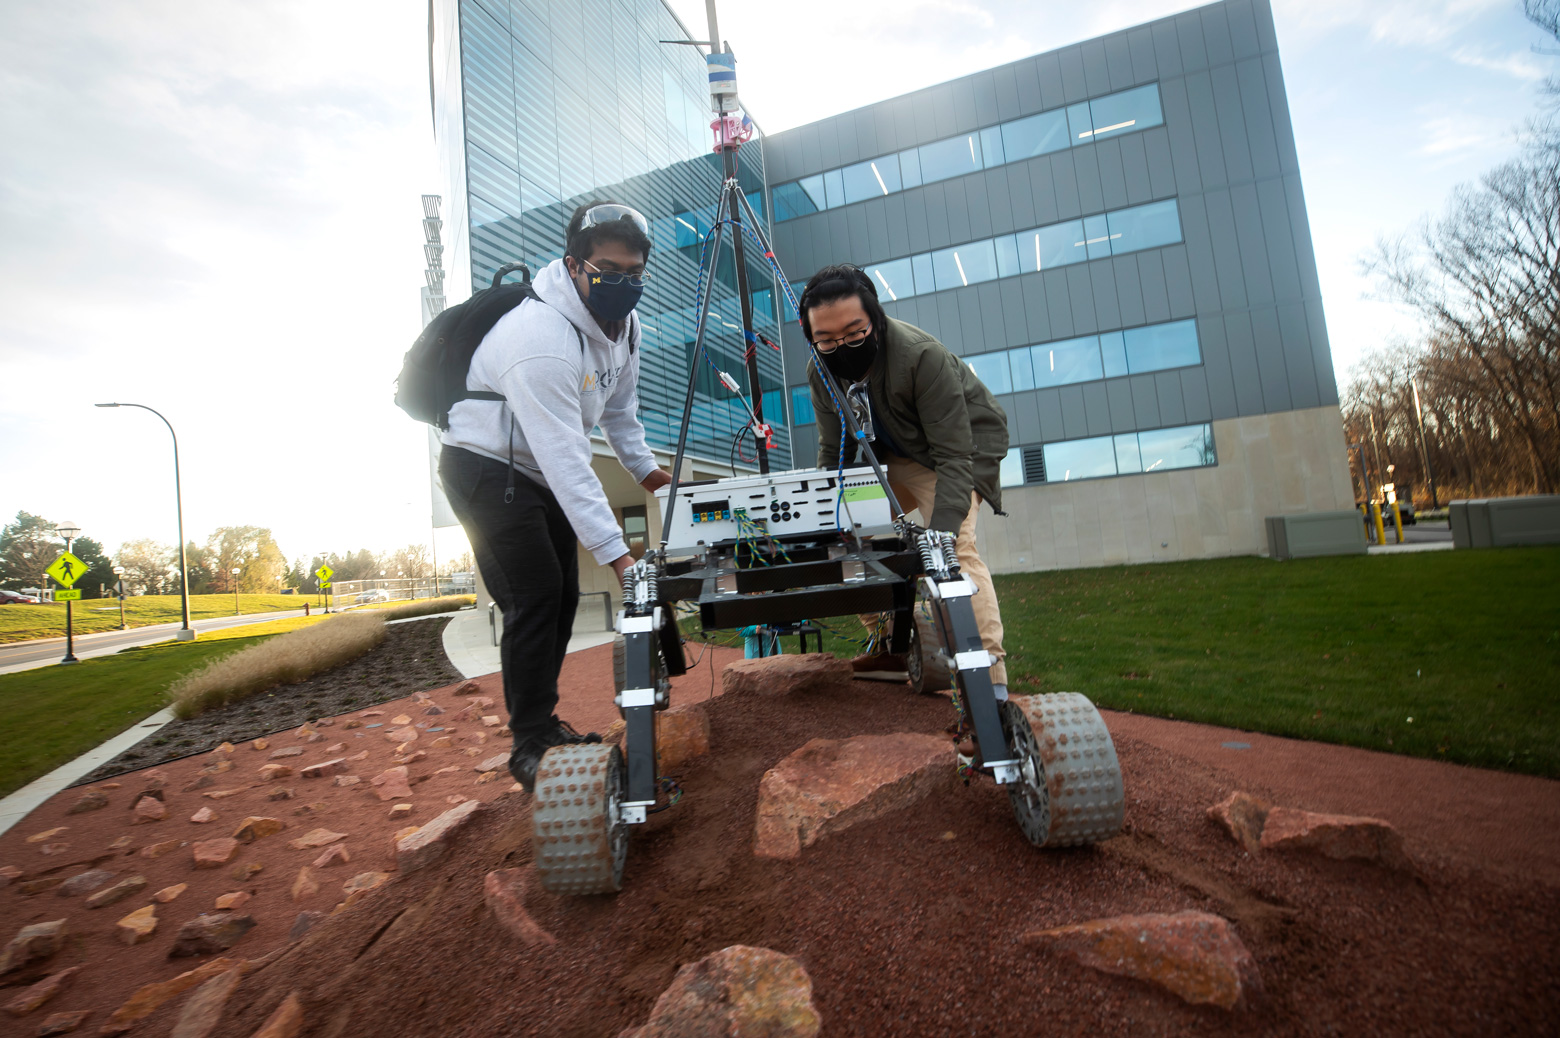 The Michigan Mars Rover team tests their Mars Rover on the Mars Yard outside of the Ford Robotics Building.